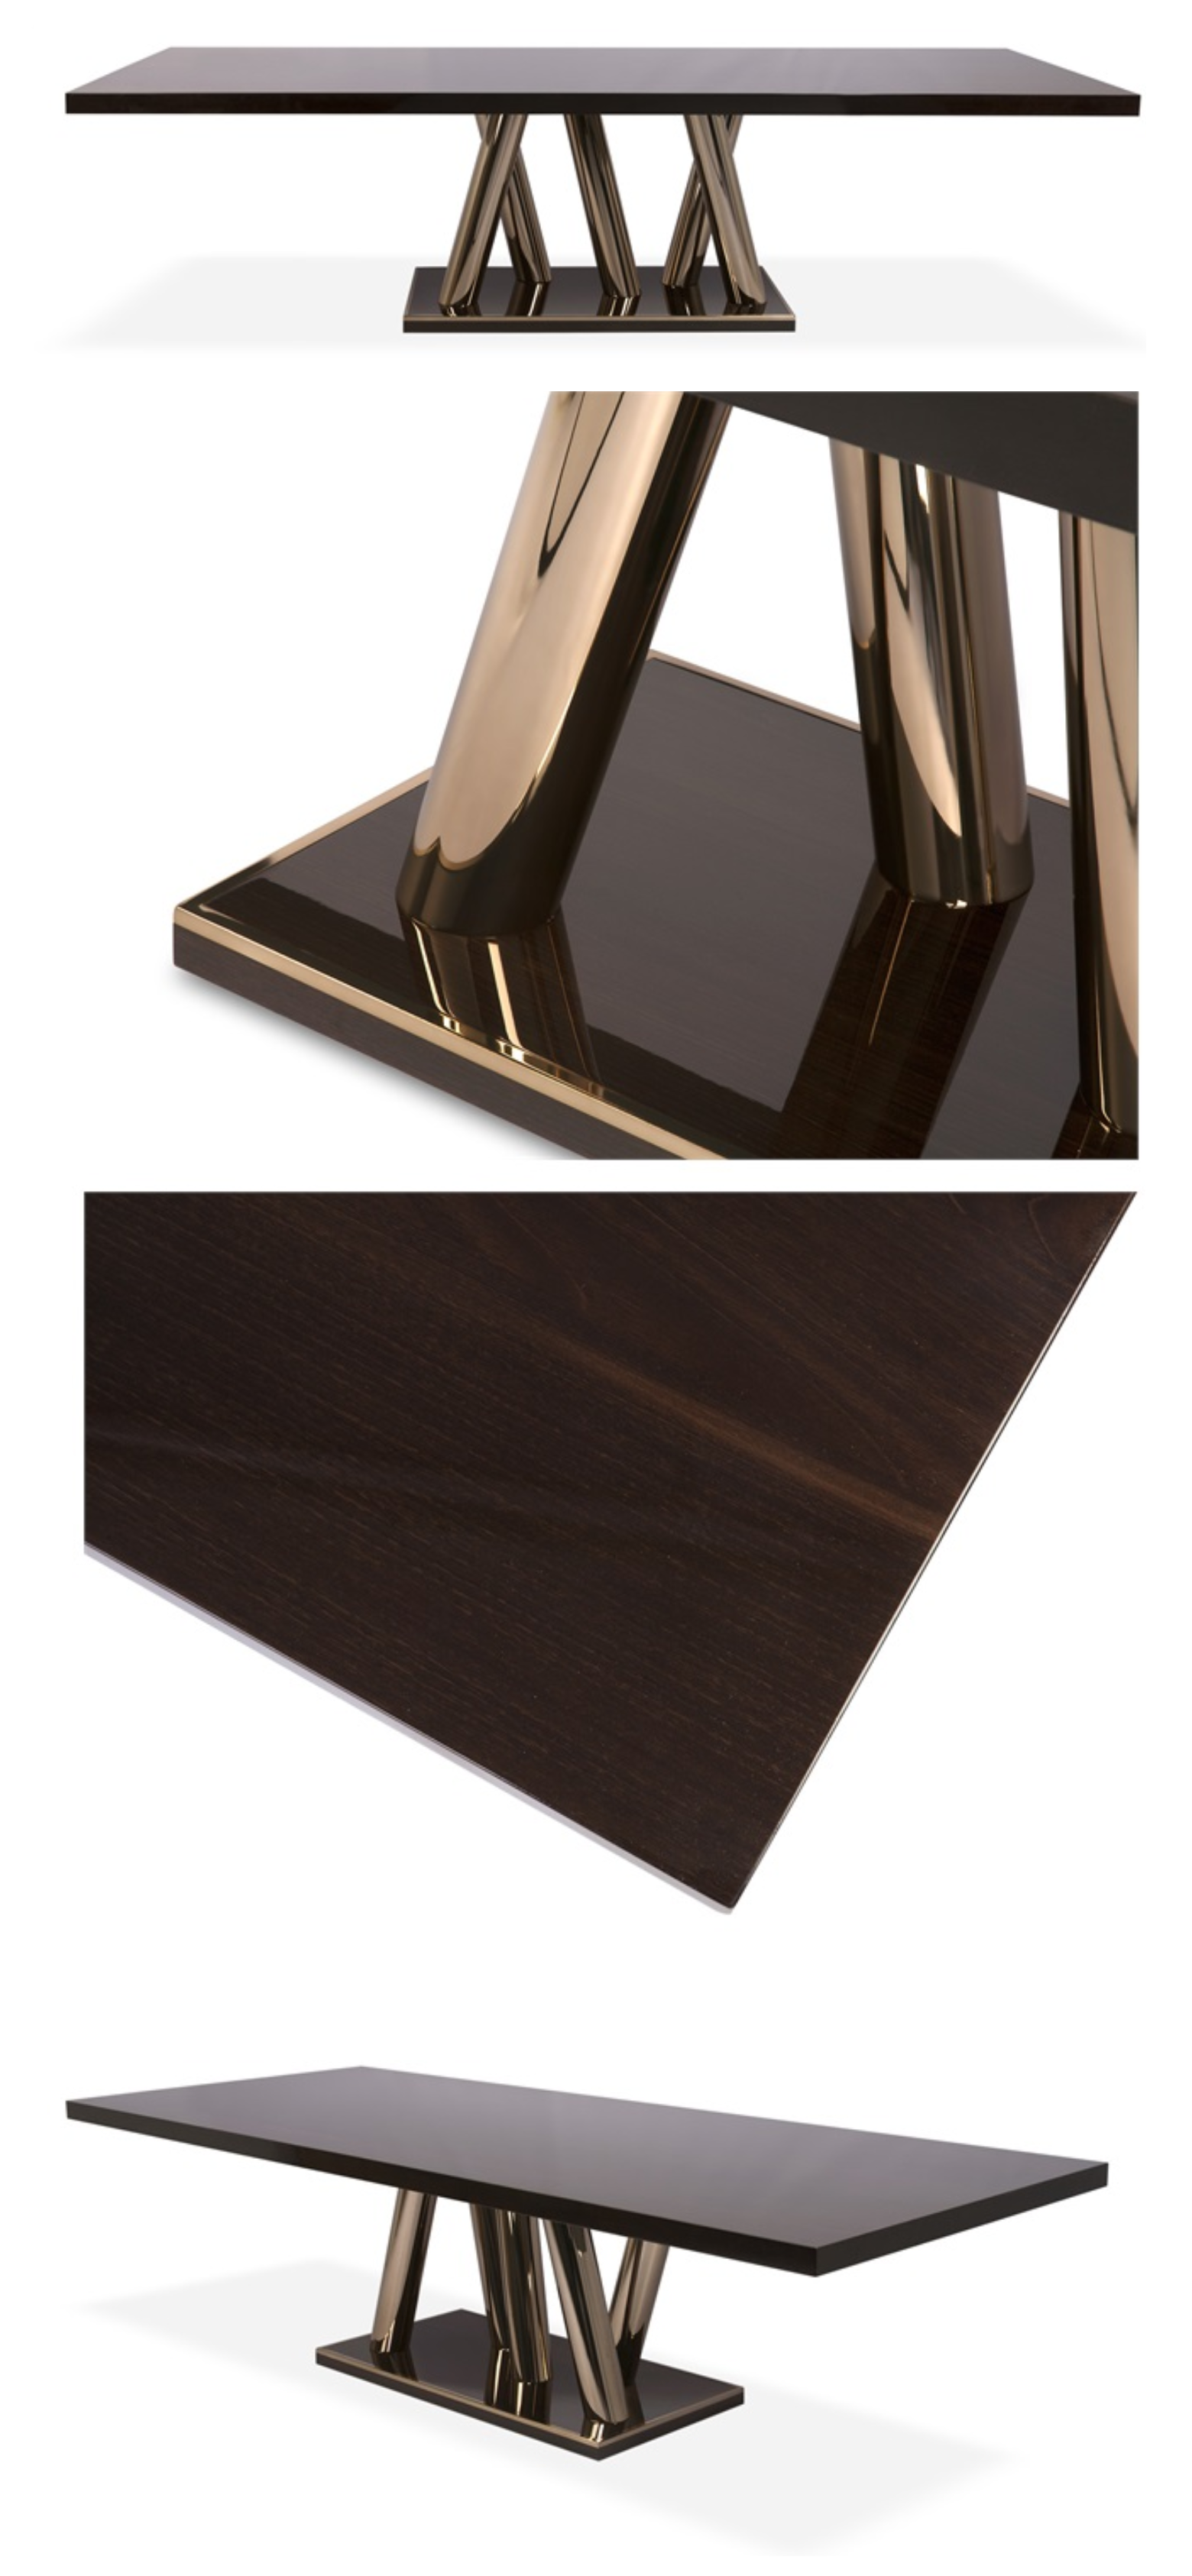 The High Shine Chestnut Table Top Polished To Glossy Perfection Is Contrasted With An Asymmetric Leg Design In